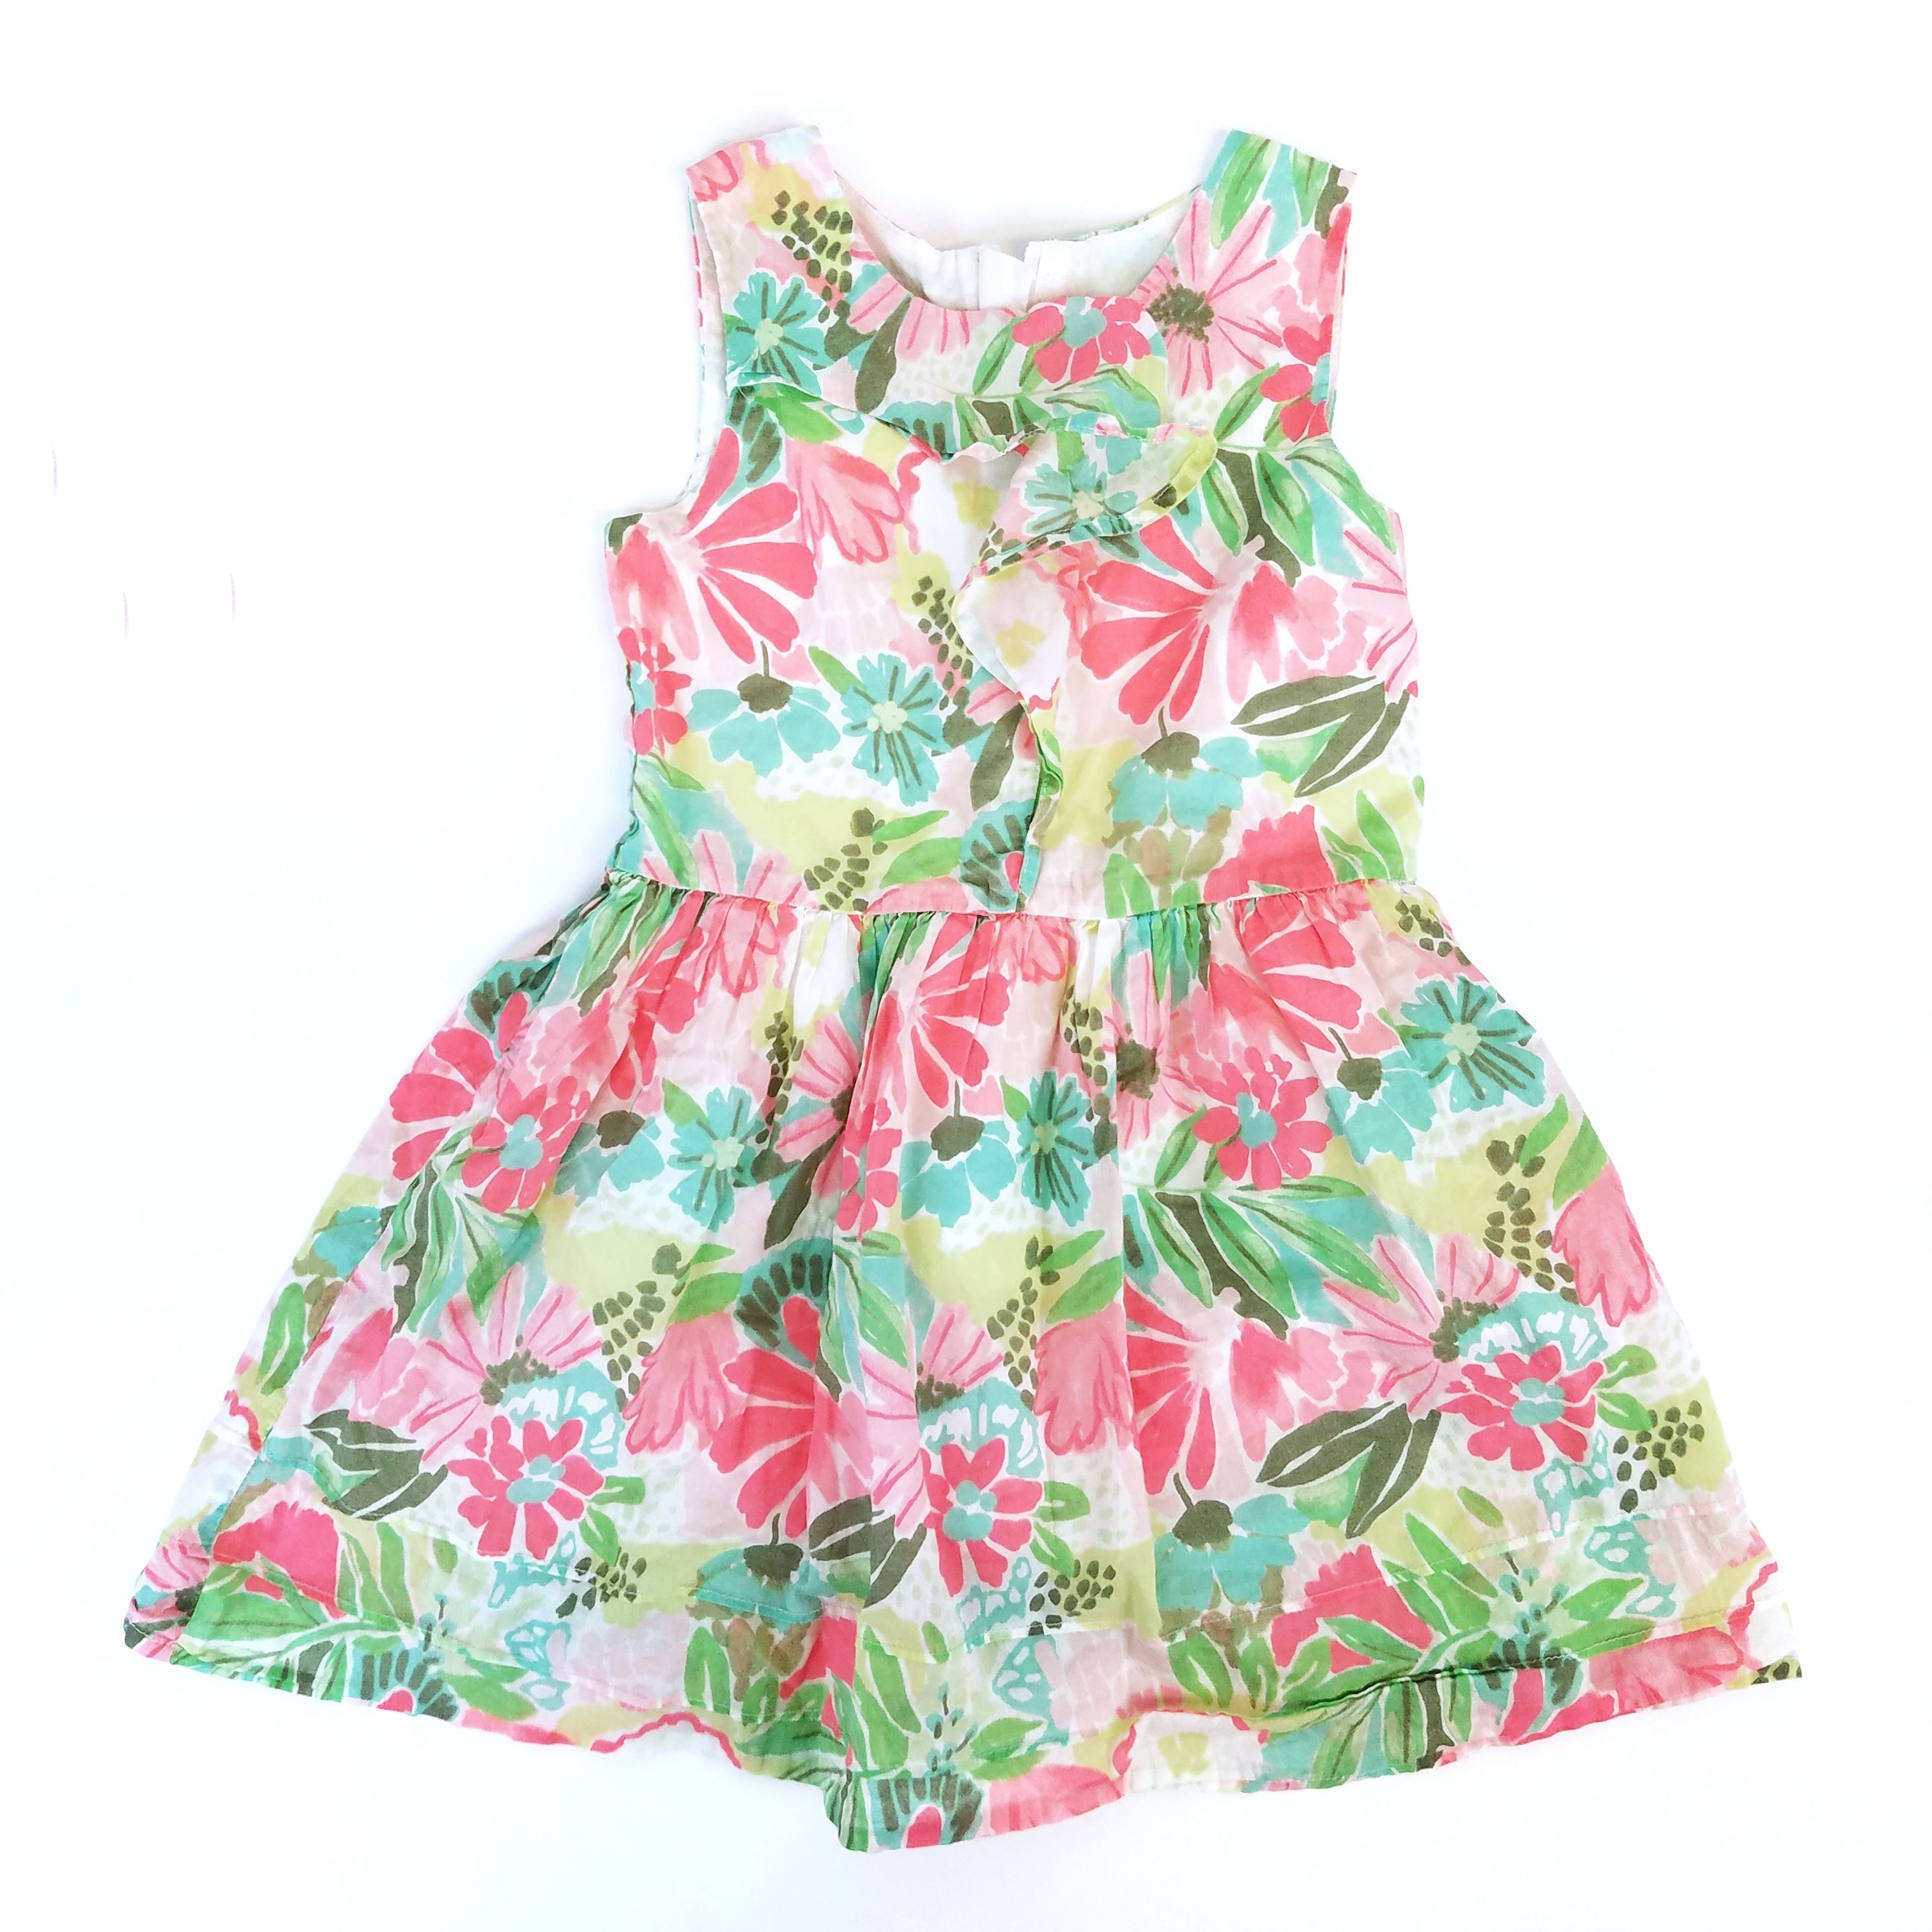 5t Ruffle Vintage-Inspired Floral Dress - Wild Child